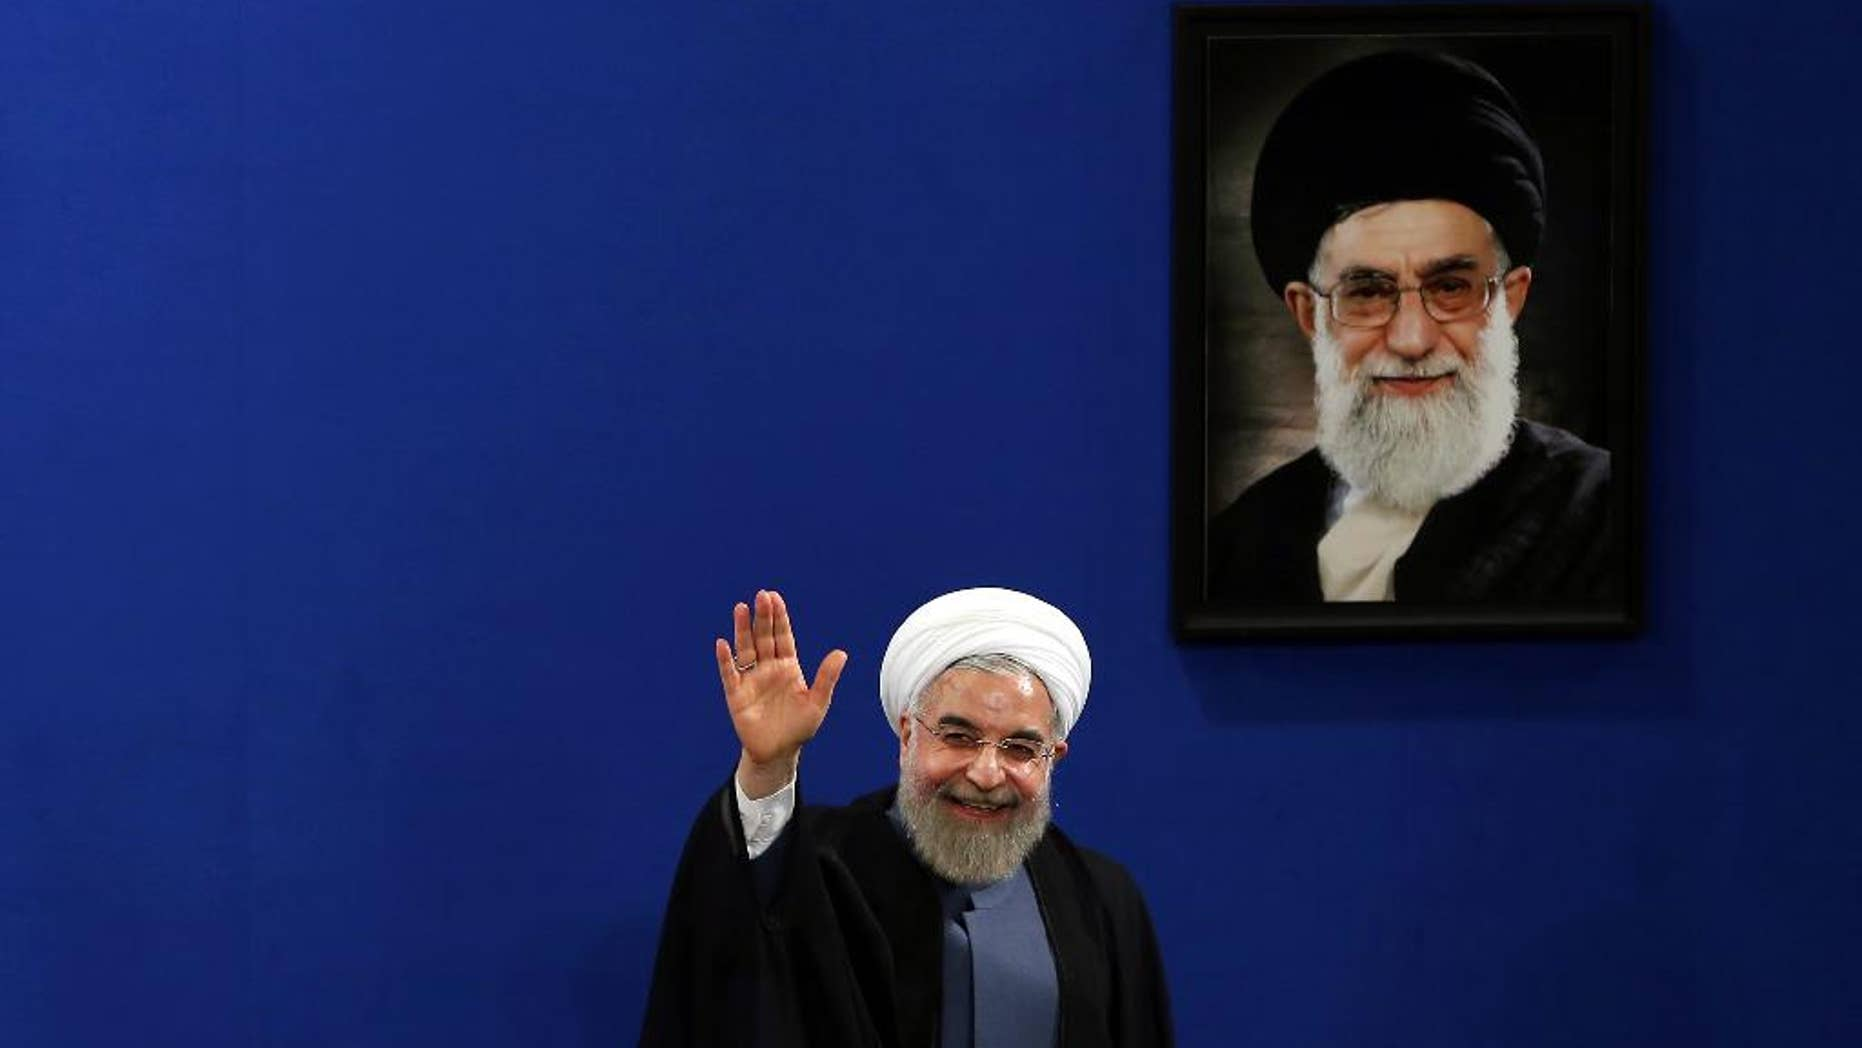 """June 13, 2015: Iran's President Hassan Rouhani waves to reporters at the conclusion of his press conference on the second anniversary of his election, in Tehran, Iran. Rouhani said a final nuclear deal is """"within reach"""" as Iran and world powers face a June 30 deadline for an agreement. A picture of the supreme leader Ayatollah Ali Khamenei hangs on the wall."""